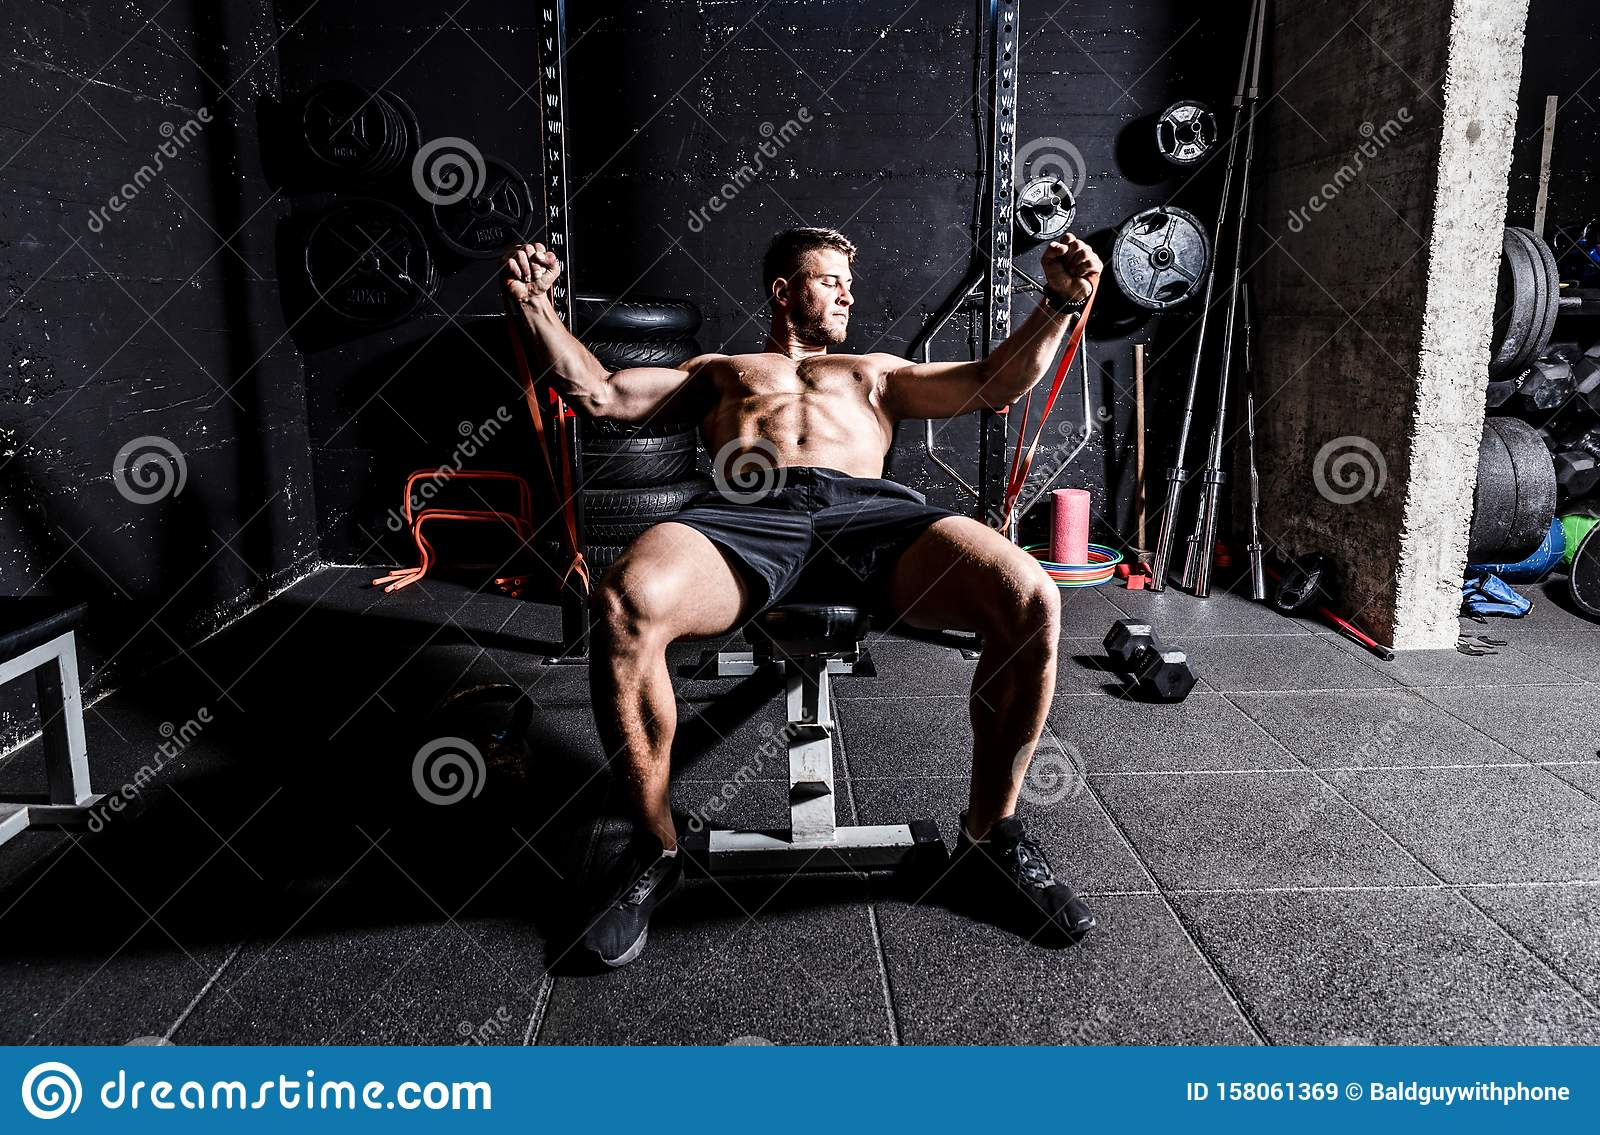 Young Strong Focused Fit Muscular Man Chest Bench Press Stretching Workout Training In The Gym With Rubber For Strength And Good L Stock Image Image Of Chest Bodybuilding 158061369